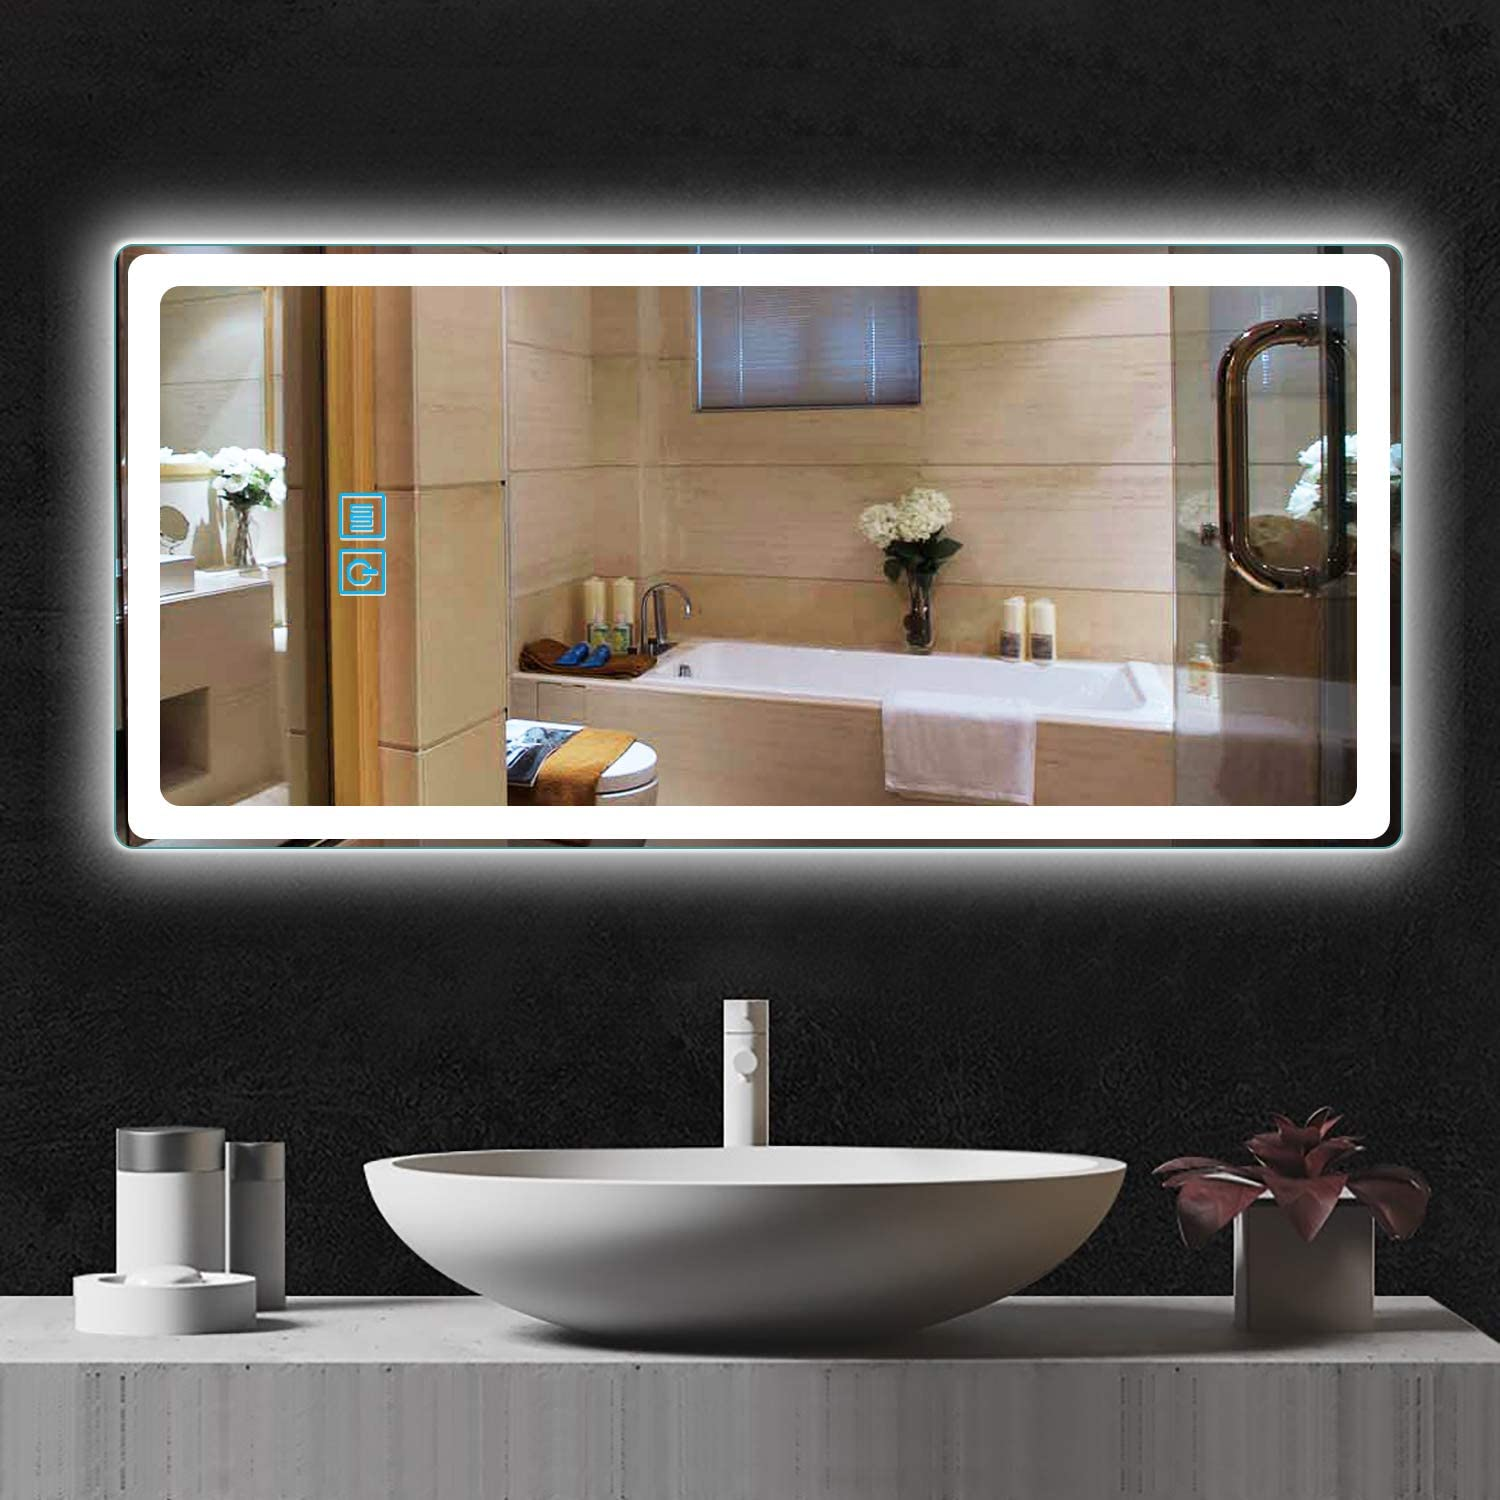 Neutype Led Wall Mounted Mirrors 44 X 20 Sleek Led Backlit Bathroom Mirror Frameless Round Corner Design Vertical Horizontal Large Make Up Mirror Defogger Dimmable Function Ul Listed Walmart Com Walmart Com